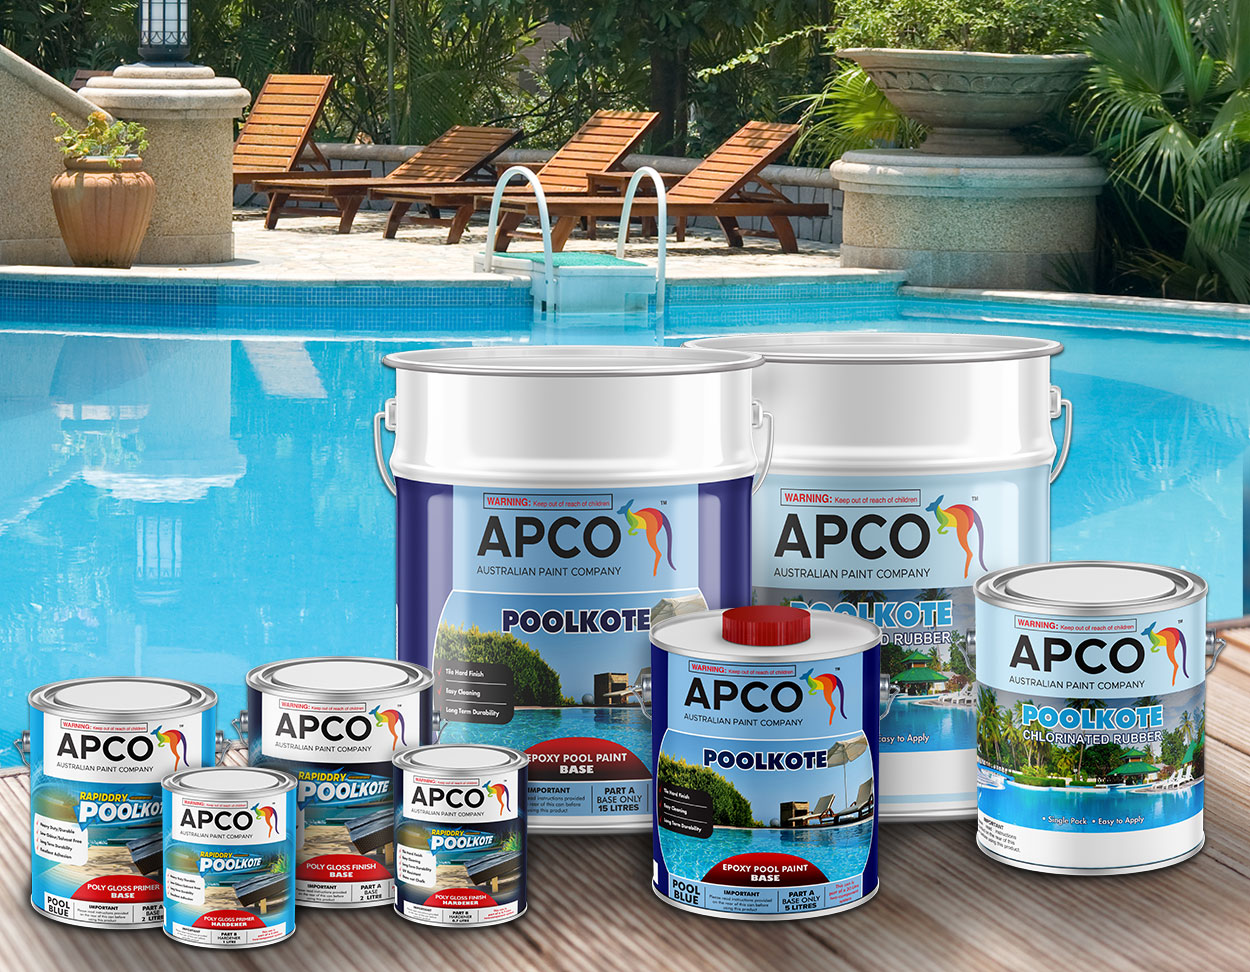 Poolkote paint products